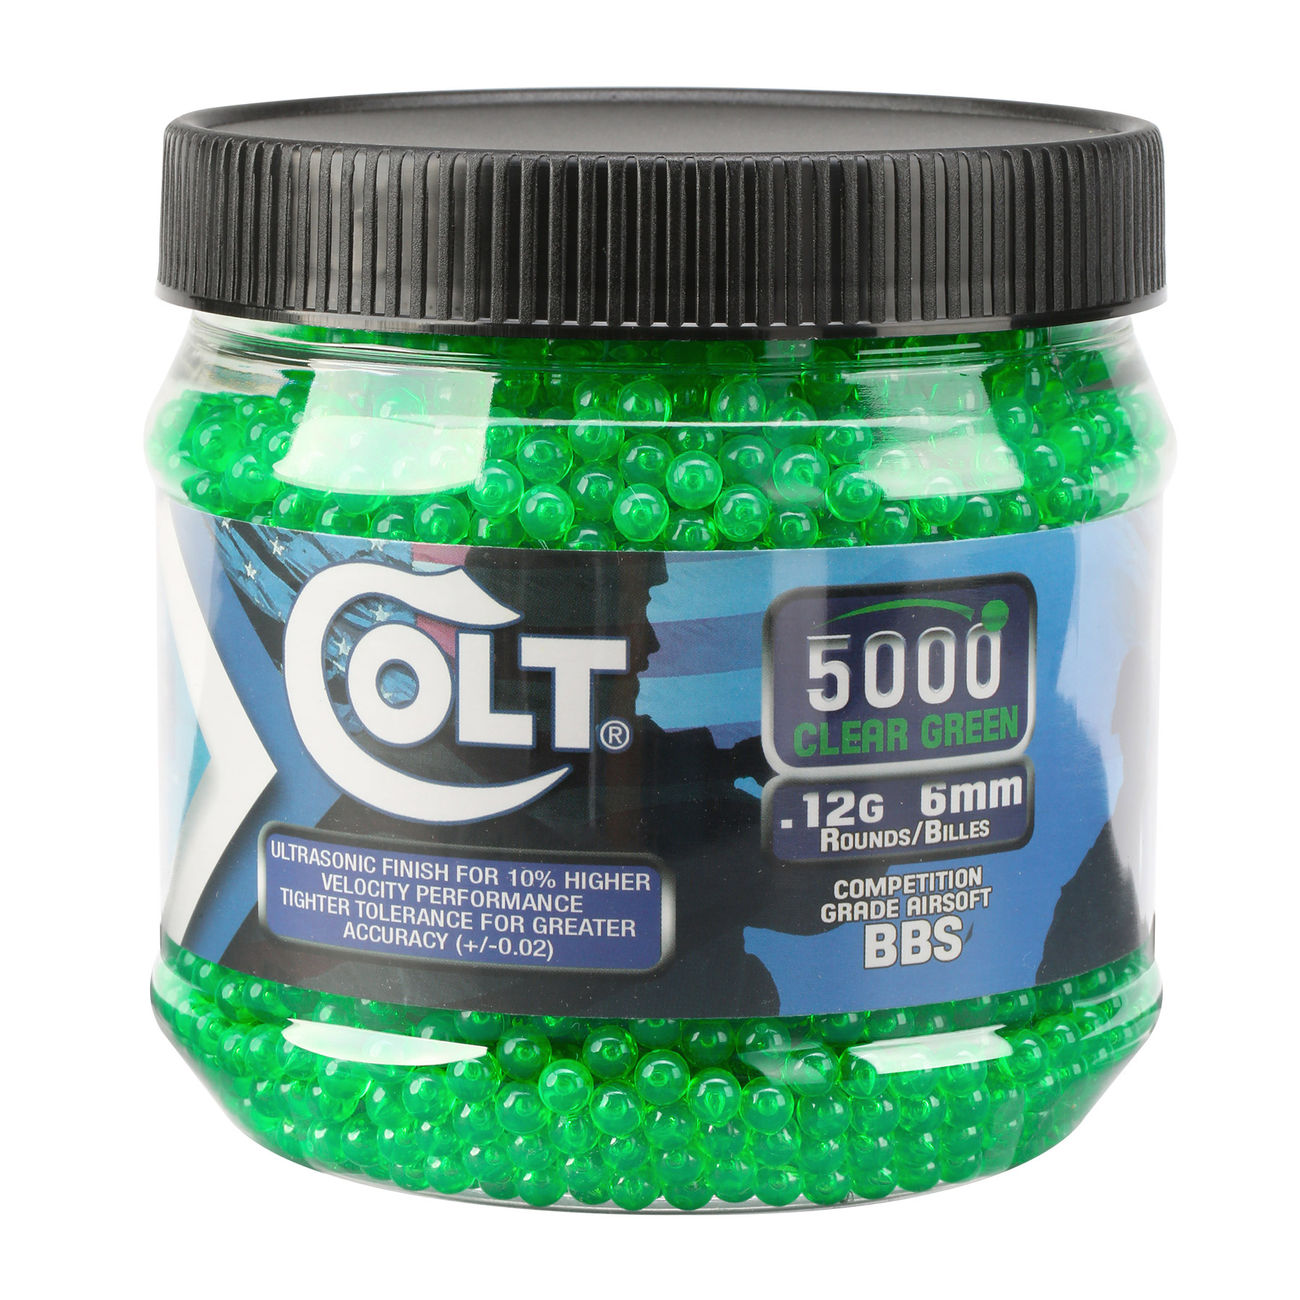 Cybergun Colt Competition Grade BBs 0,12g 5.000er Container Clear Green 0